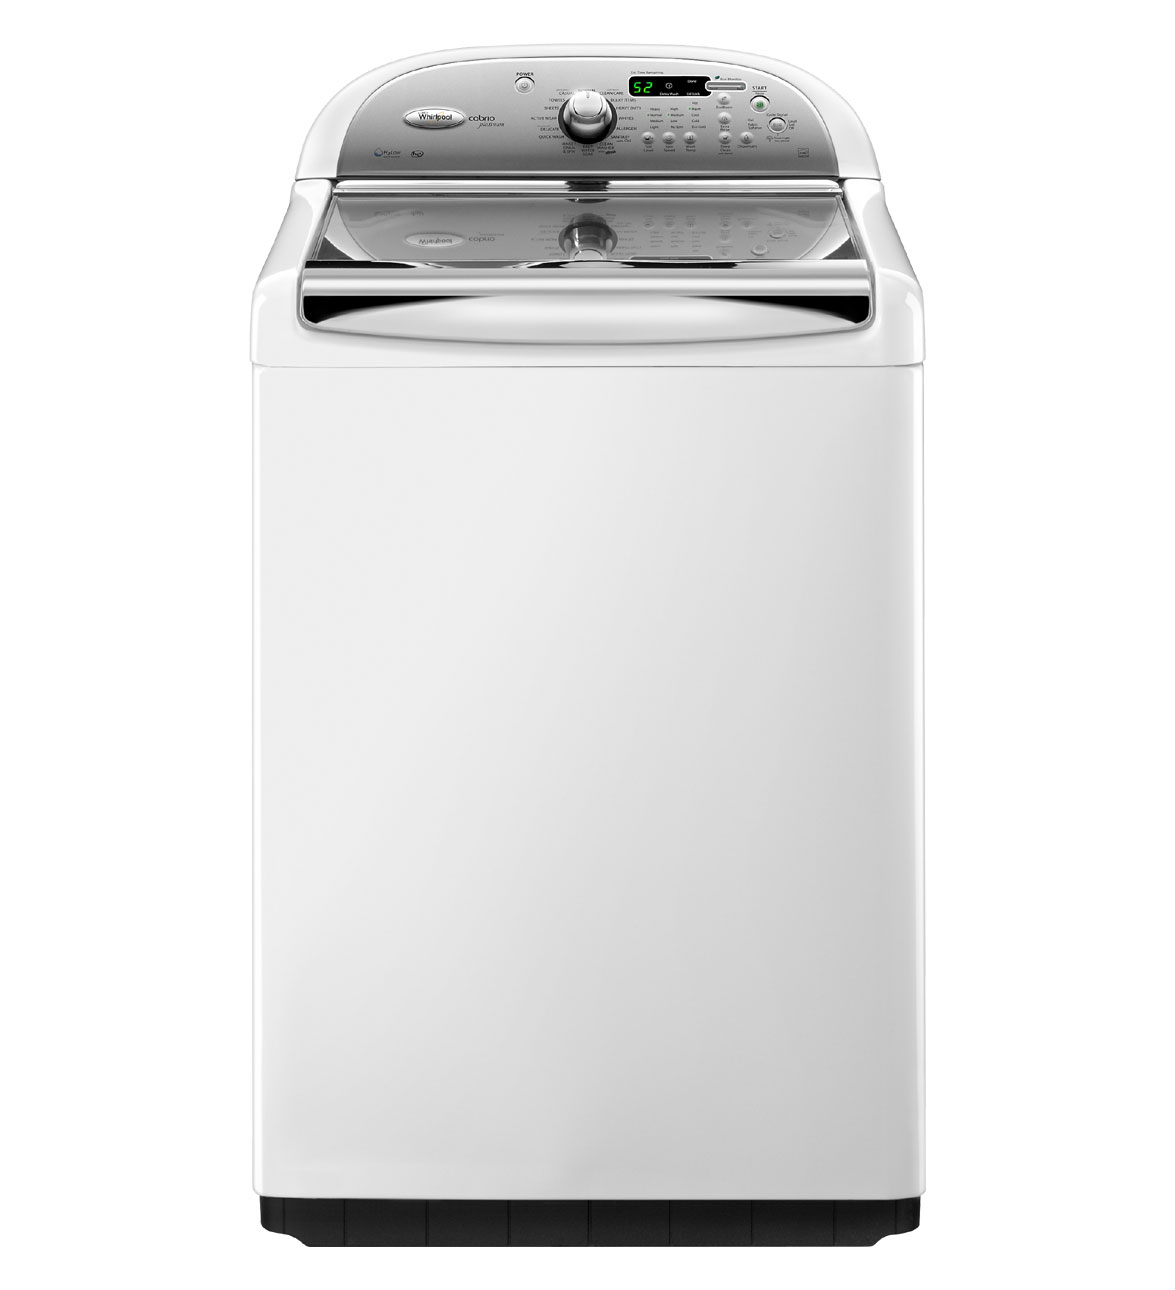 Whirlpool Cabrio Platinum 4.6 cu ft High-Efficiency Top-Load Washer (White) ENERGY STAR (Model: WTW8800YW)